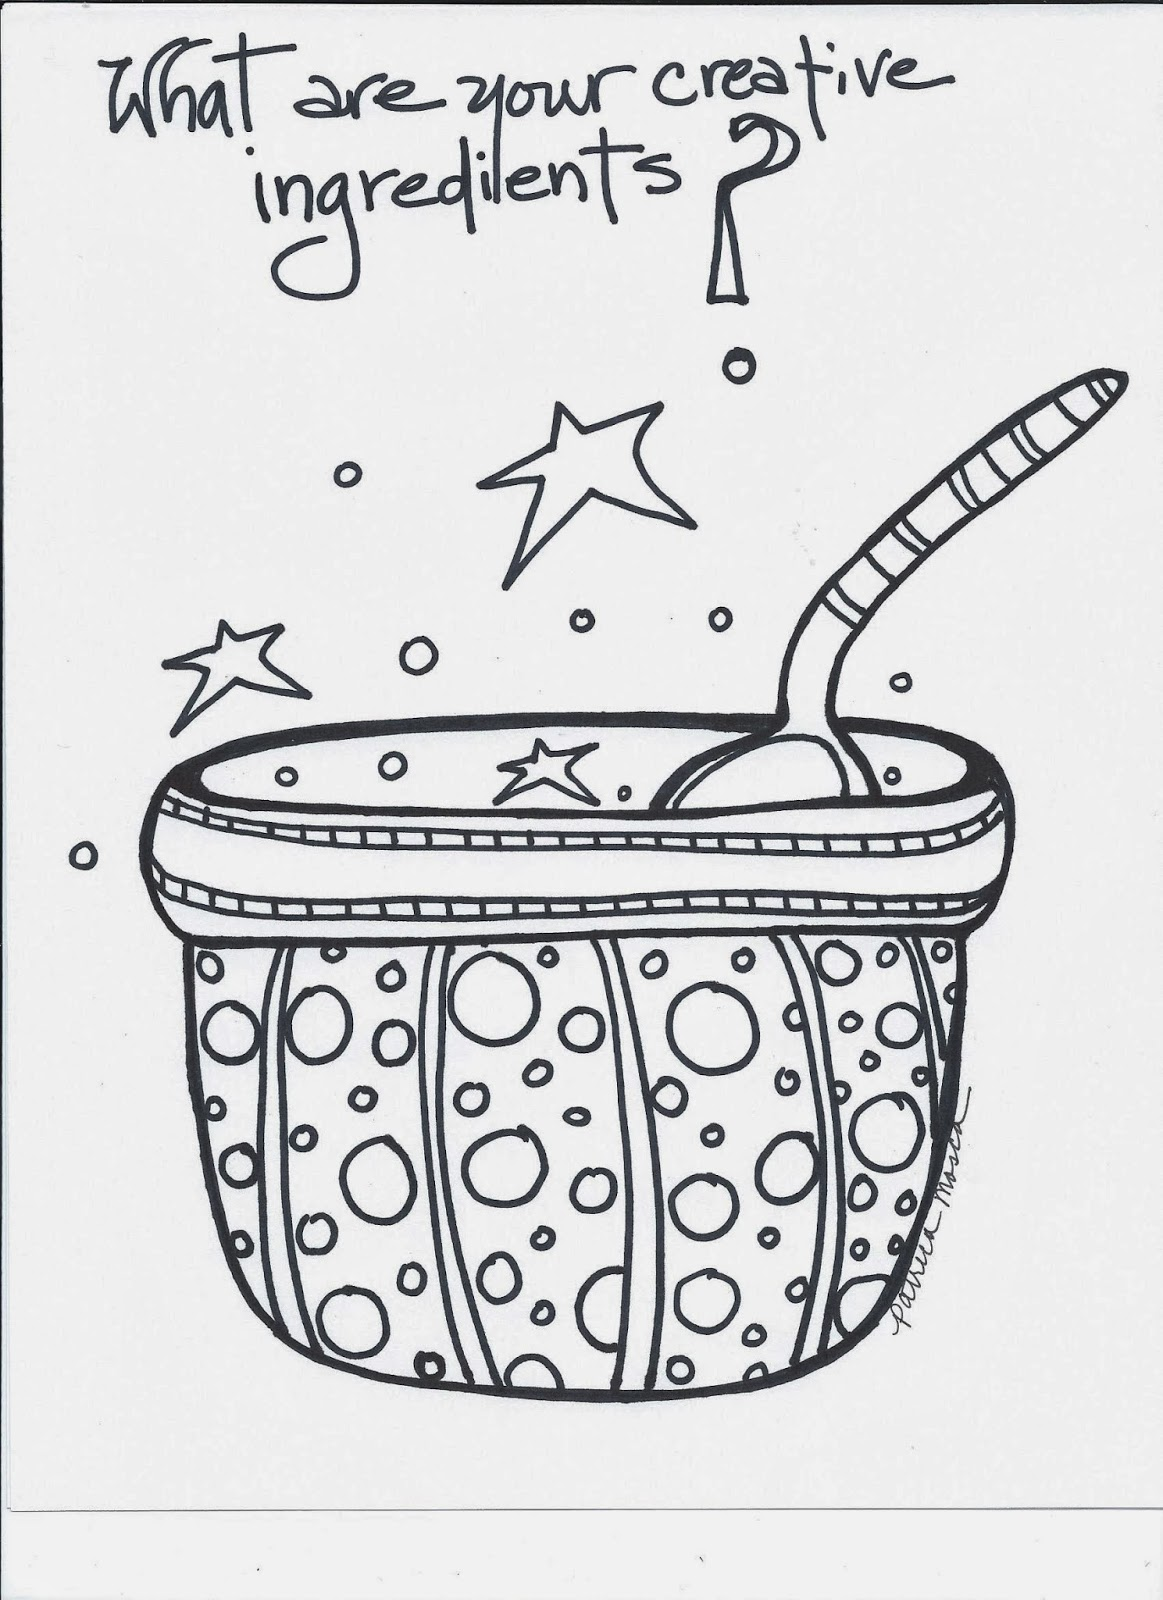 Coloring book page of a playground - Ingredients Coloring Book Page A Little Something From The Creative Playground Creativity Is Made Of Many Ingredients What Is Your Recipe